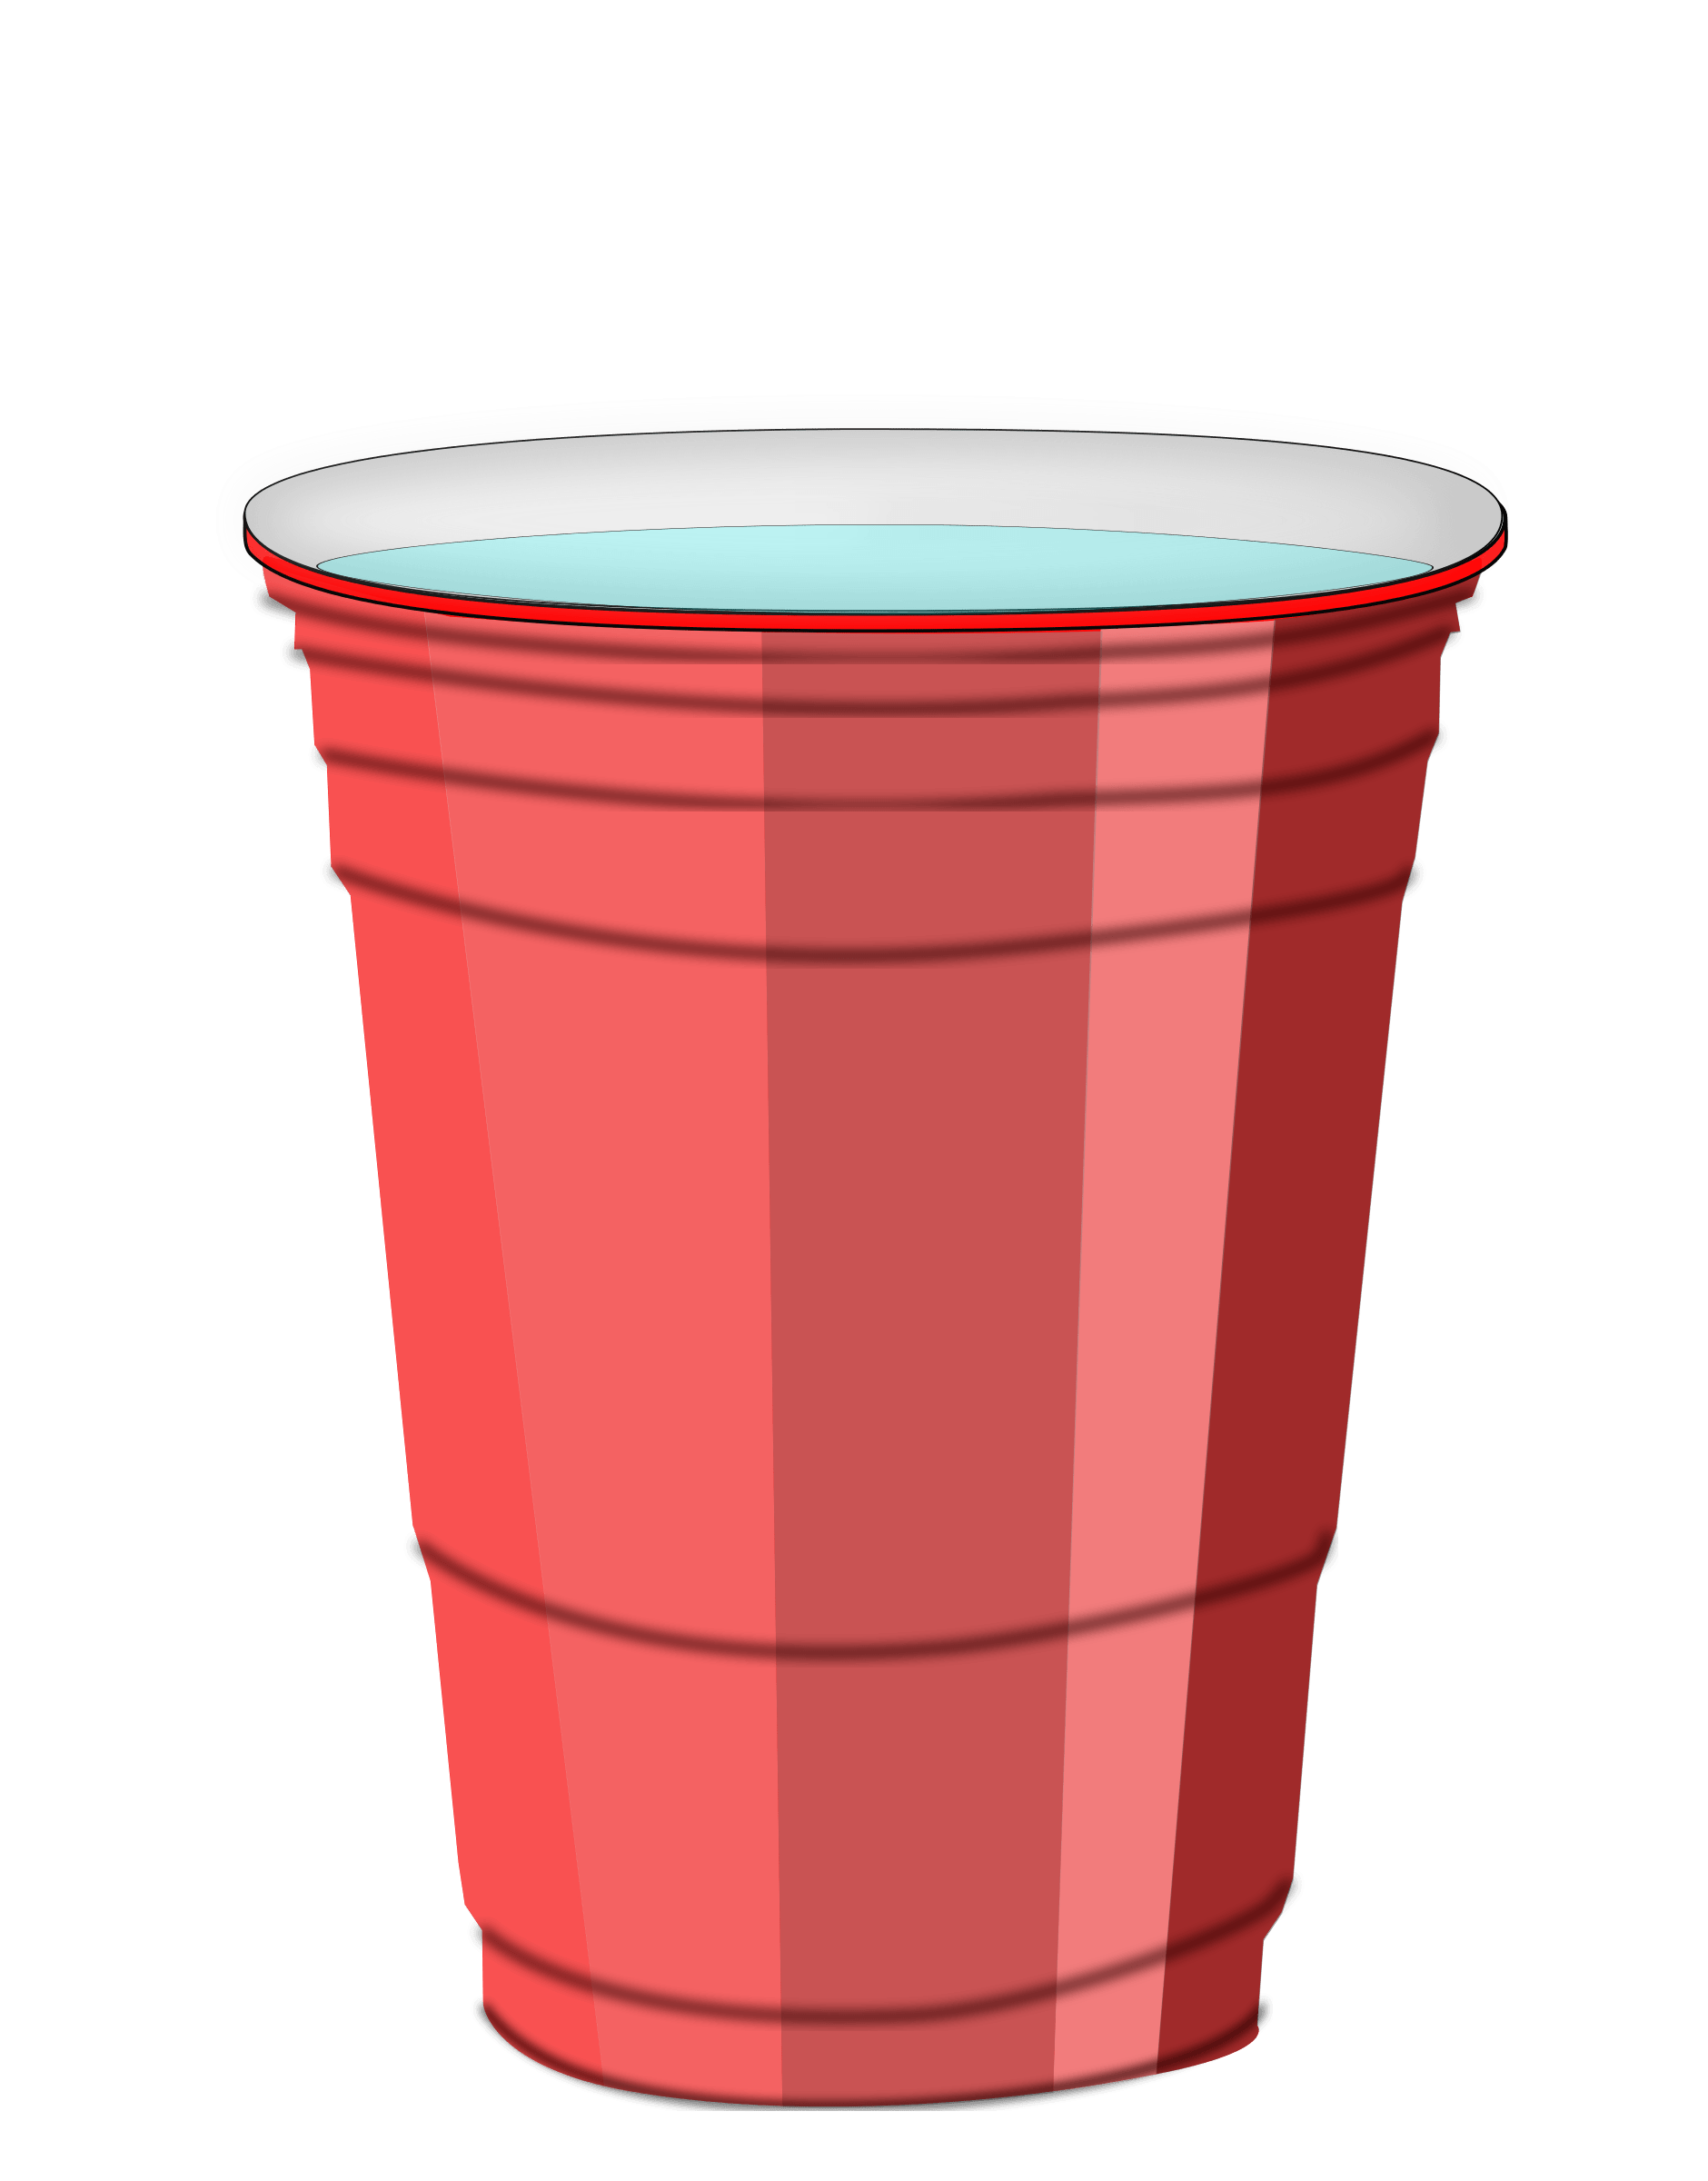 Mug clipart smooth object. Plastic cup cliparts zone